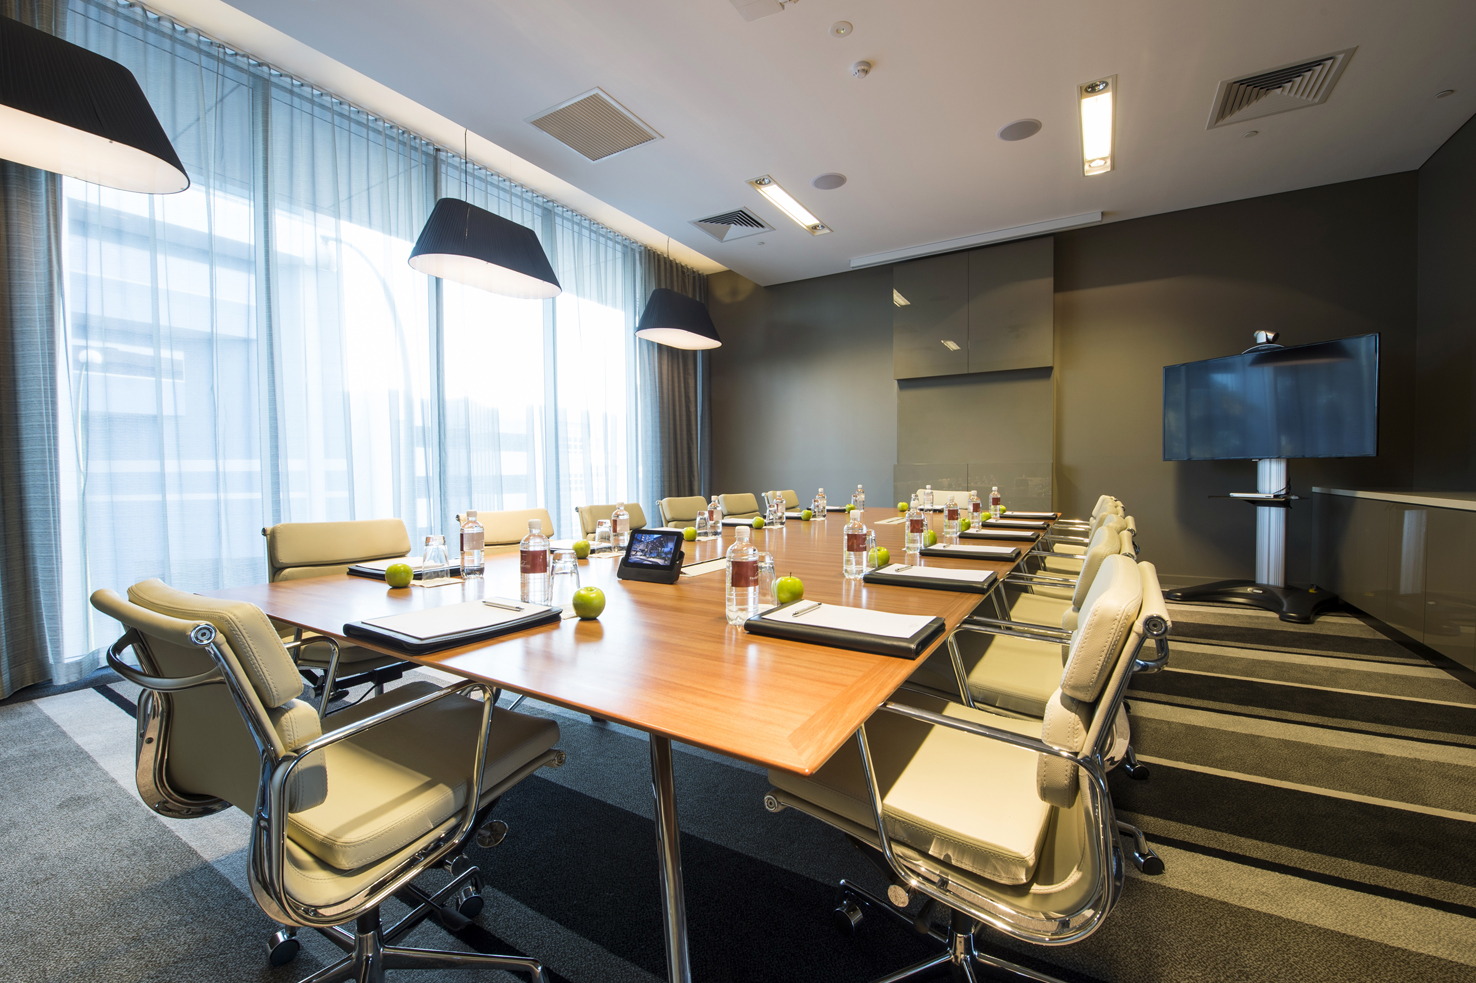 Meeting Facilities at Fraser Suites Perth - Citybase Apartments